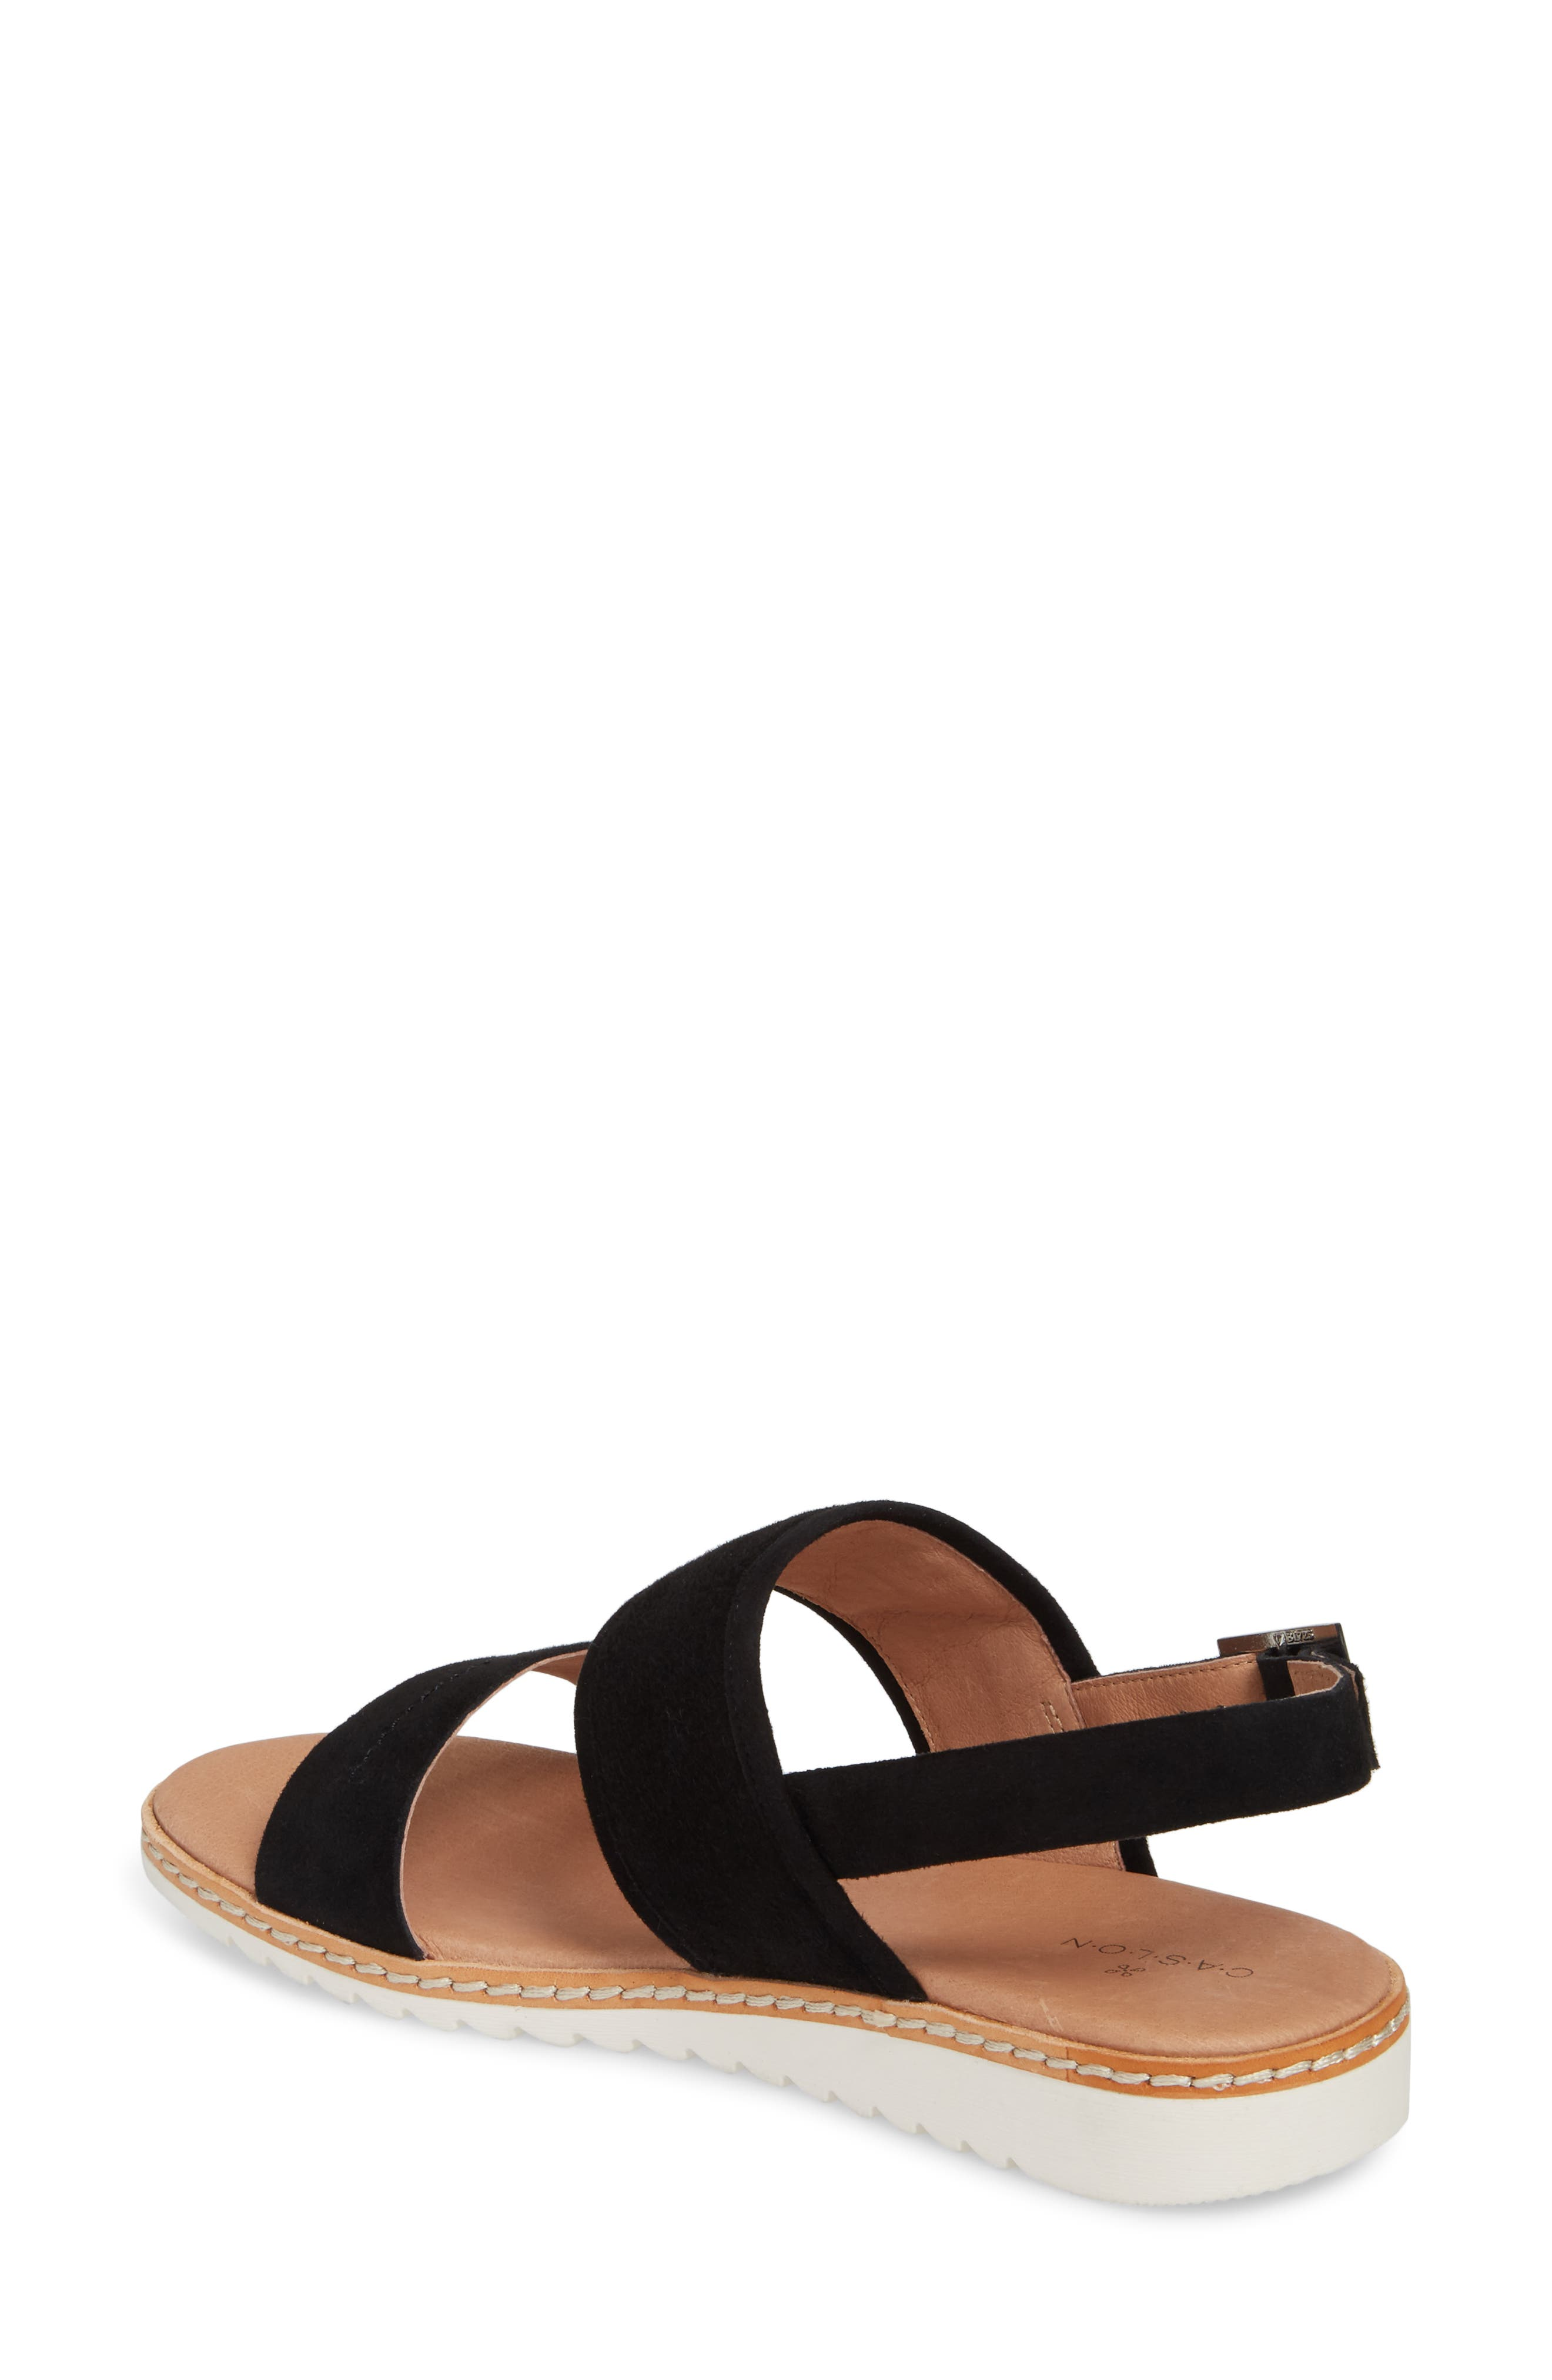 Claire Slingback Sandal,                             Alternate thumbnail 2, color,                             001